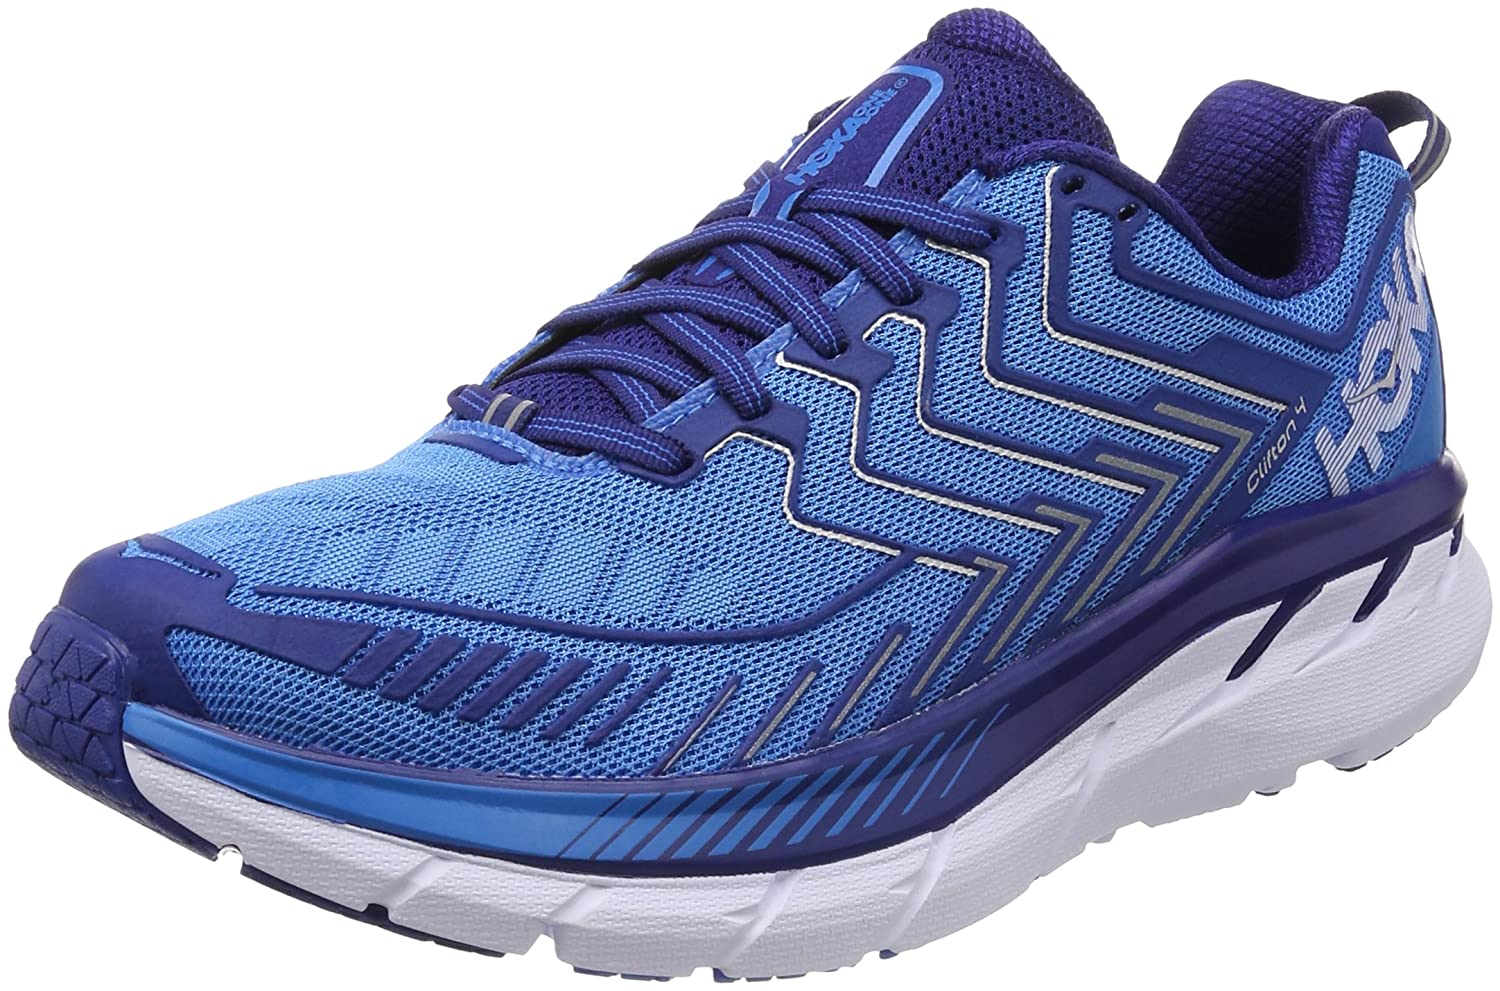 HOKA ONE ONE Clifton 4 Shoes Running Shoes - Men's 1016723